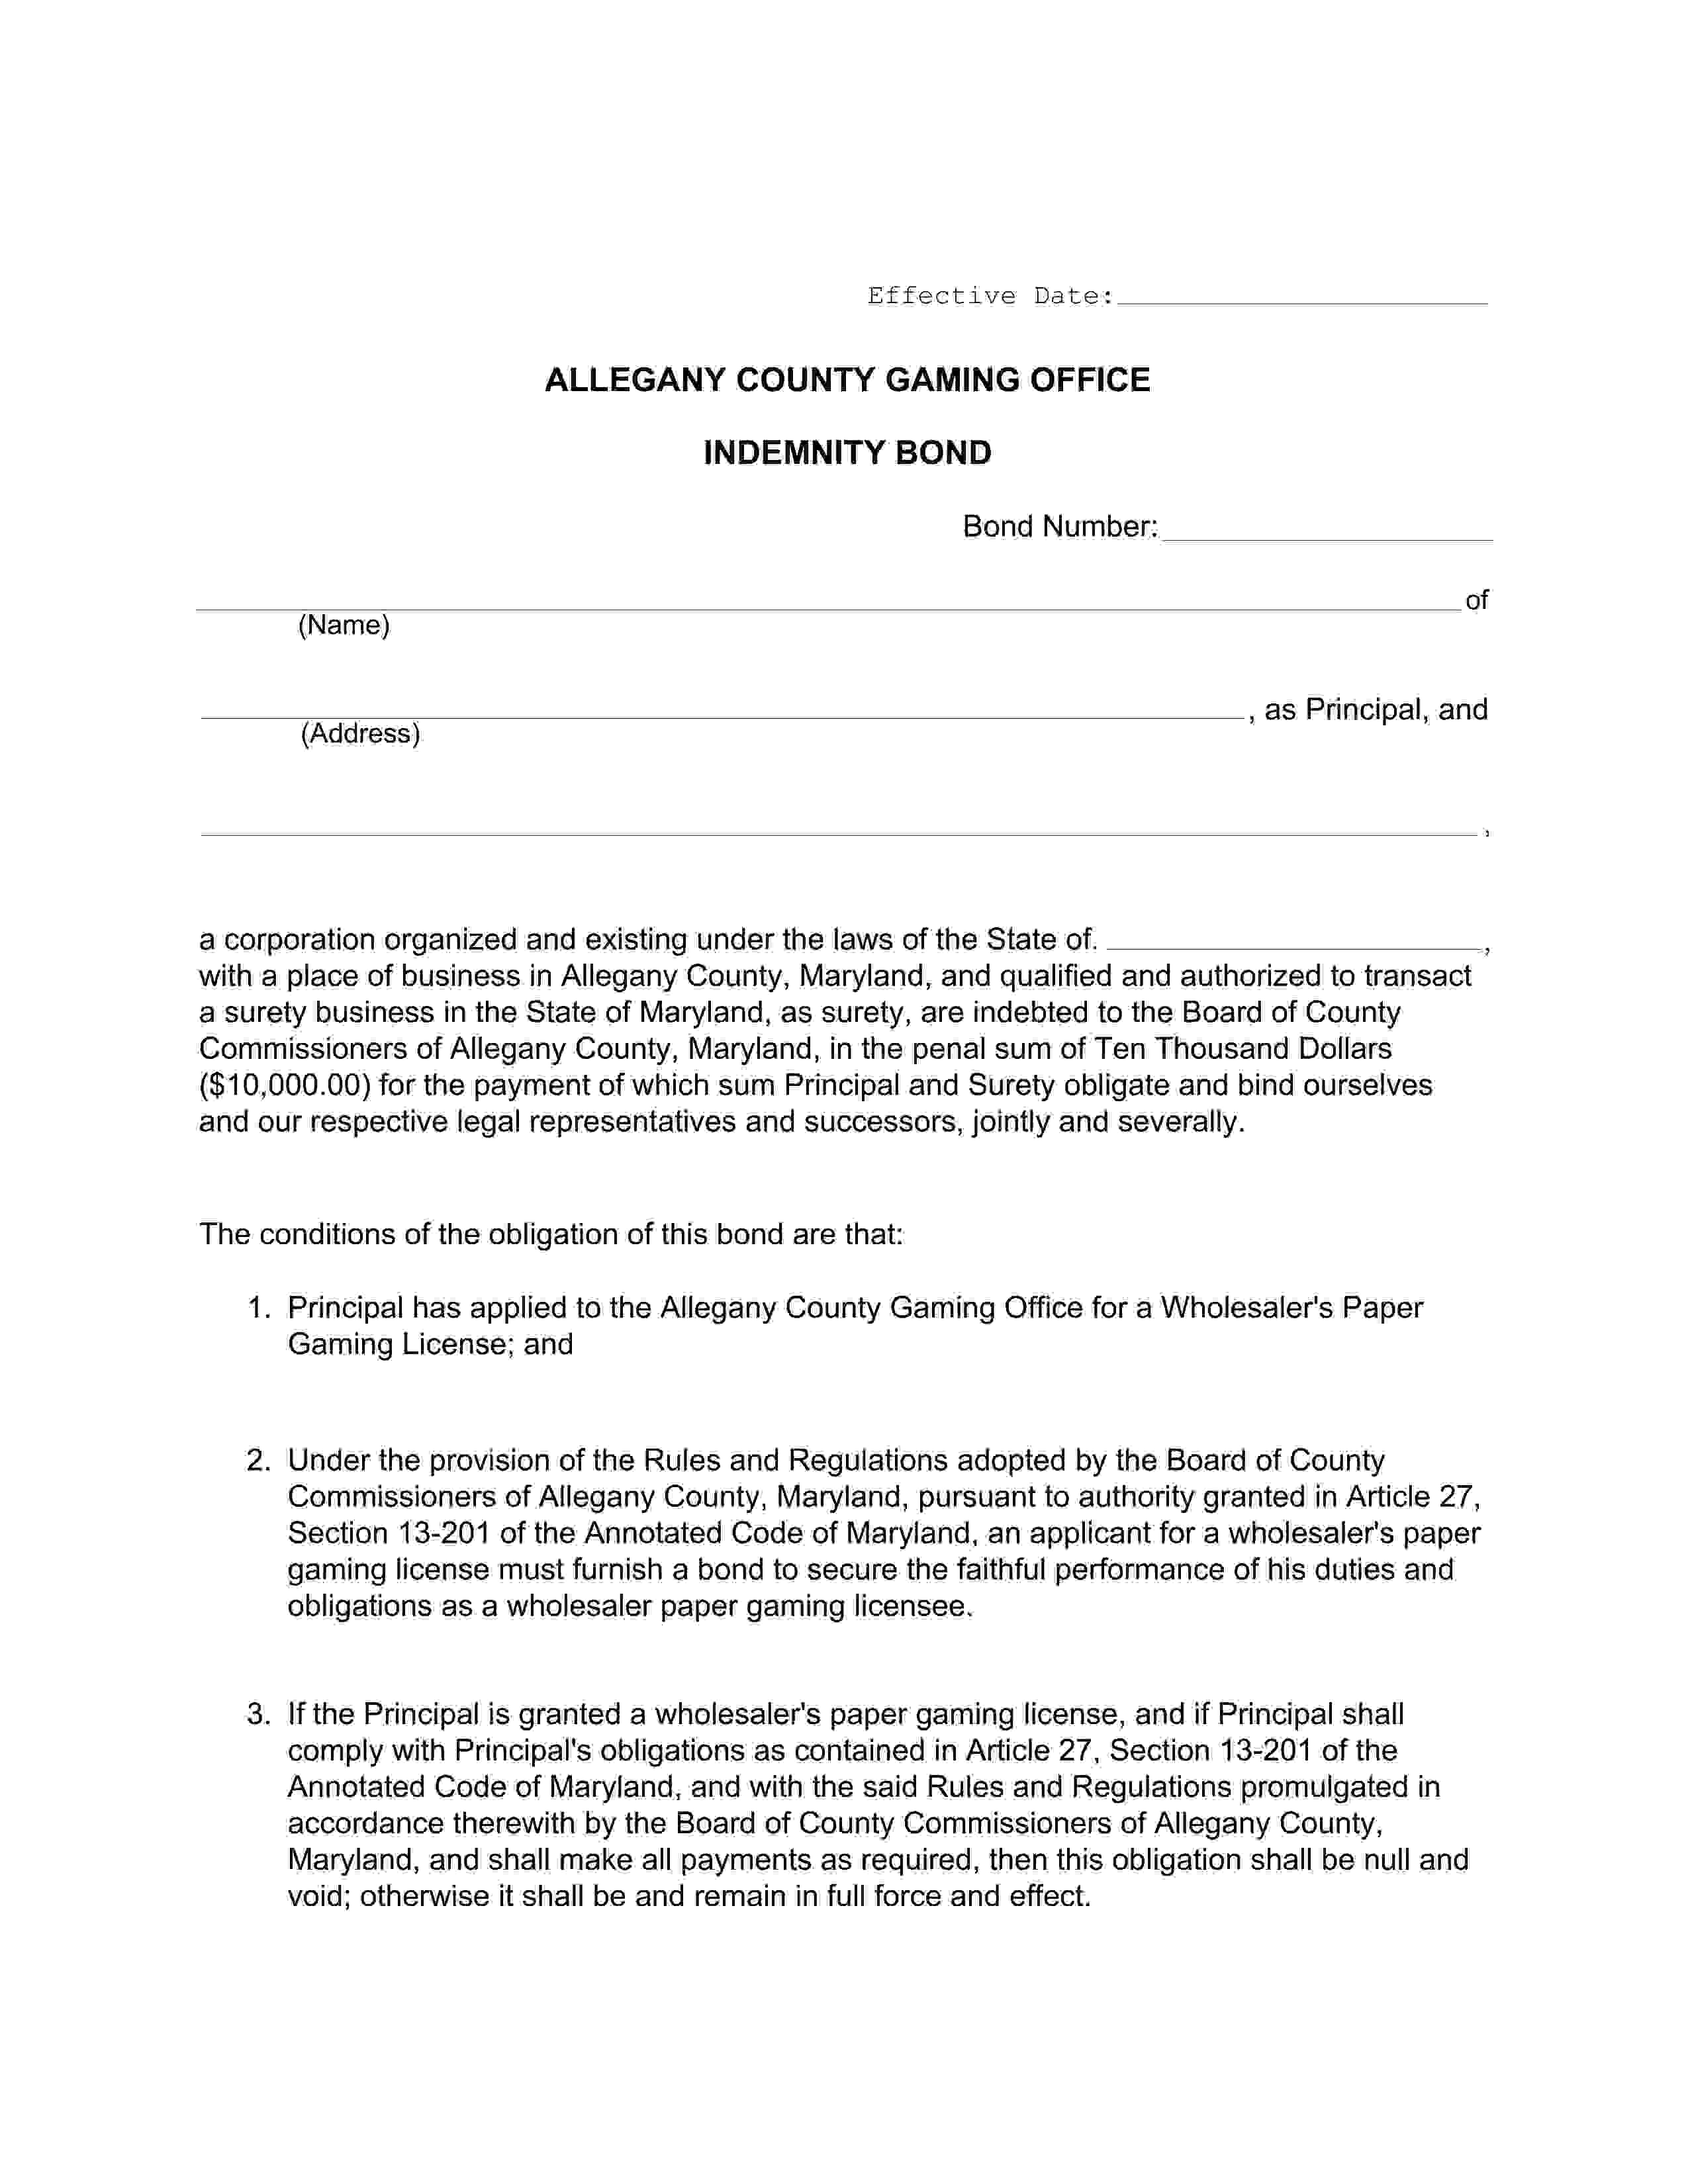 Allegany County Gaming Office Allegany - County Wholesaler's Paper Gaming License sample image